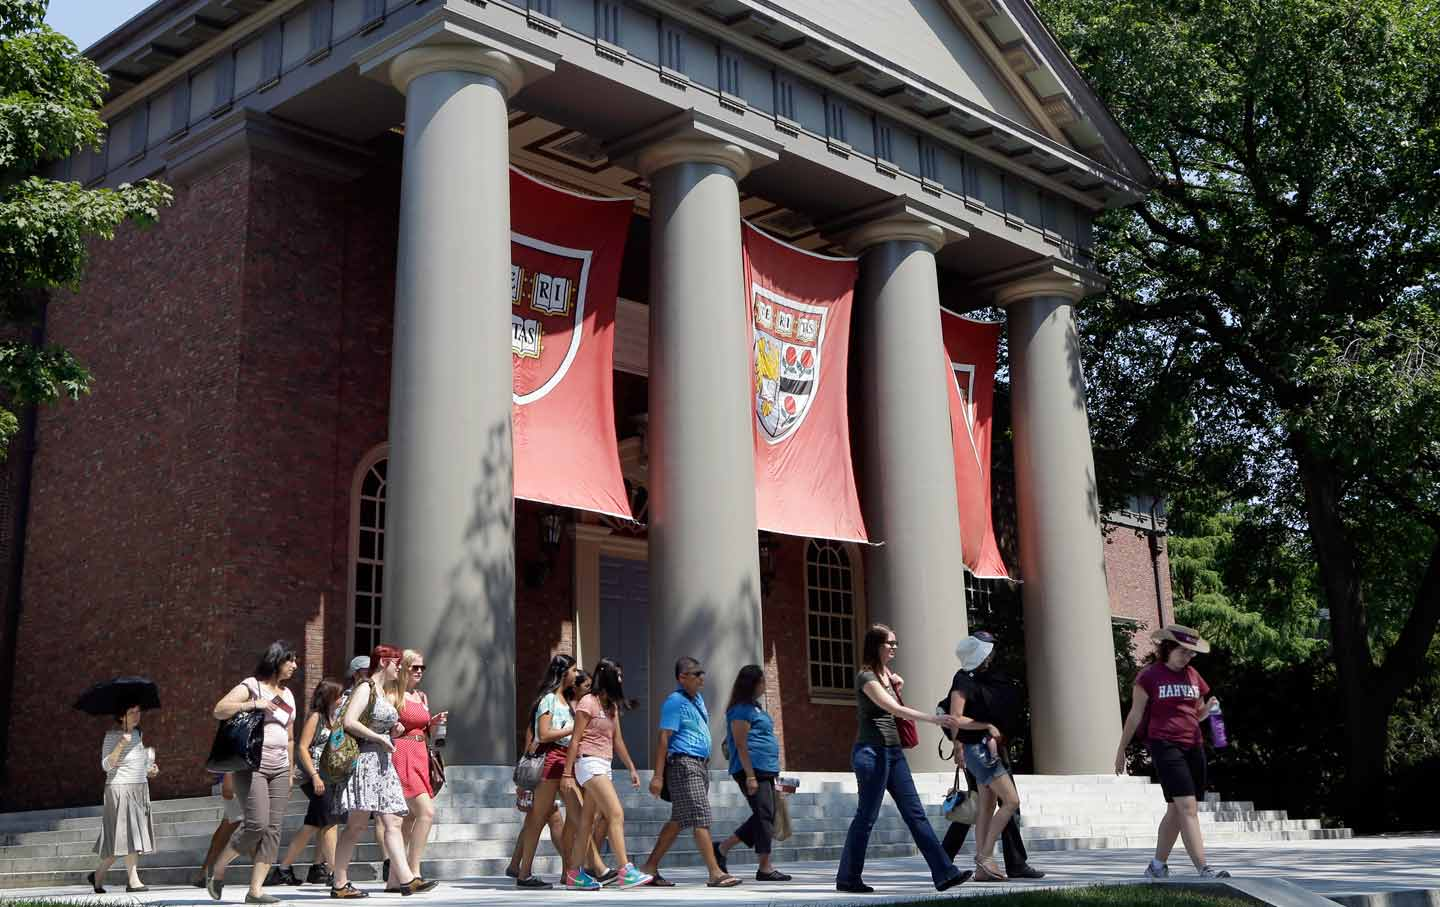 A tour group visits the campus of Harvard University in Cambridge, Massachusetts. (AP Photo / Elise Amendola, File)